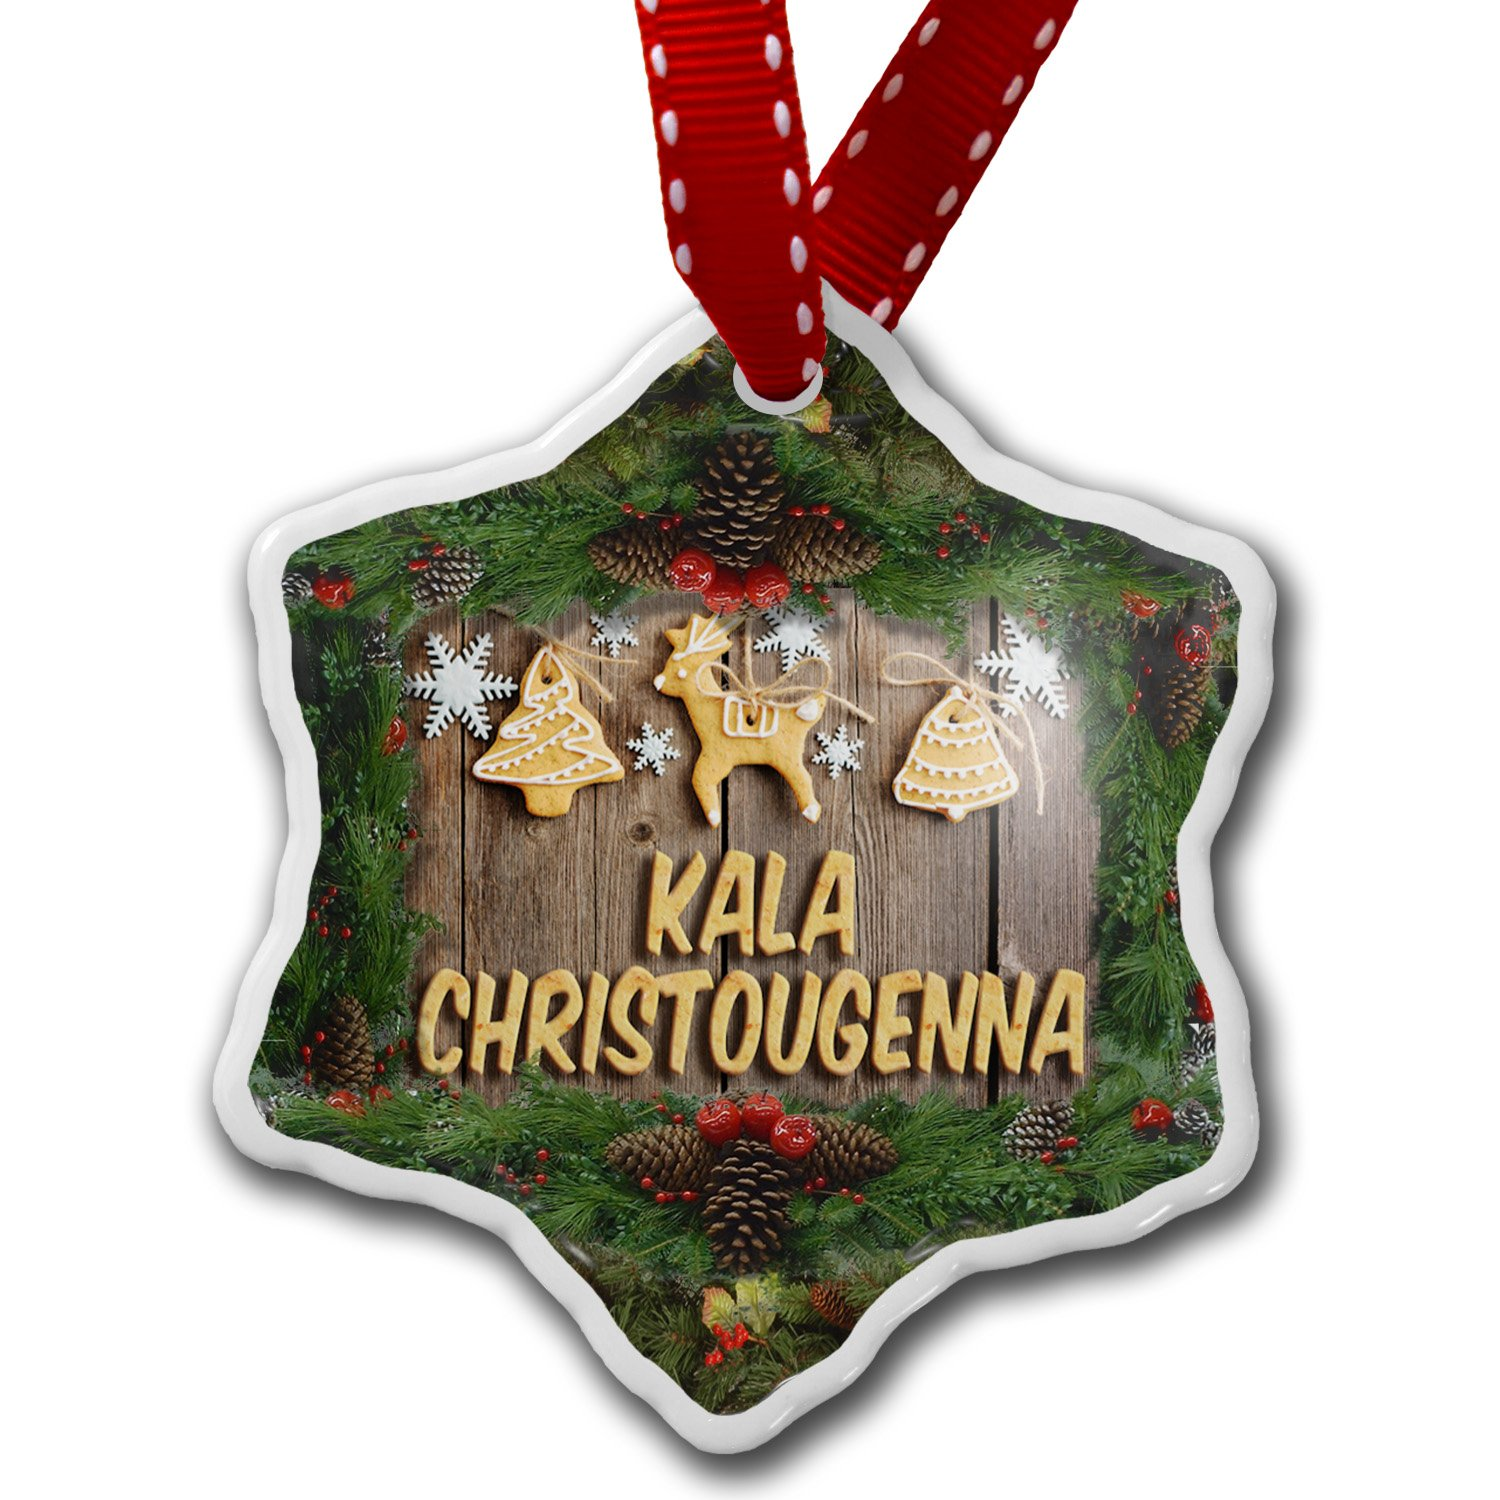 amazoncom christmas ornament merry christmas in greek from greece cyprus neonblond home kitchen - Merry Christmas In Greek